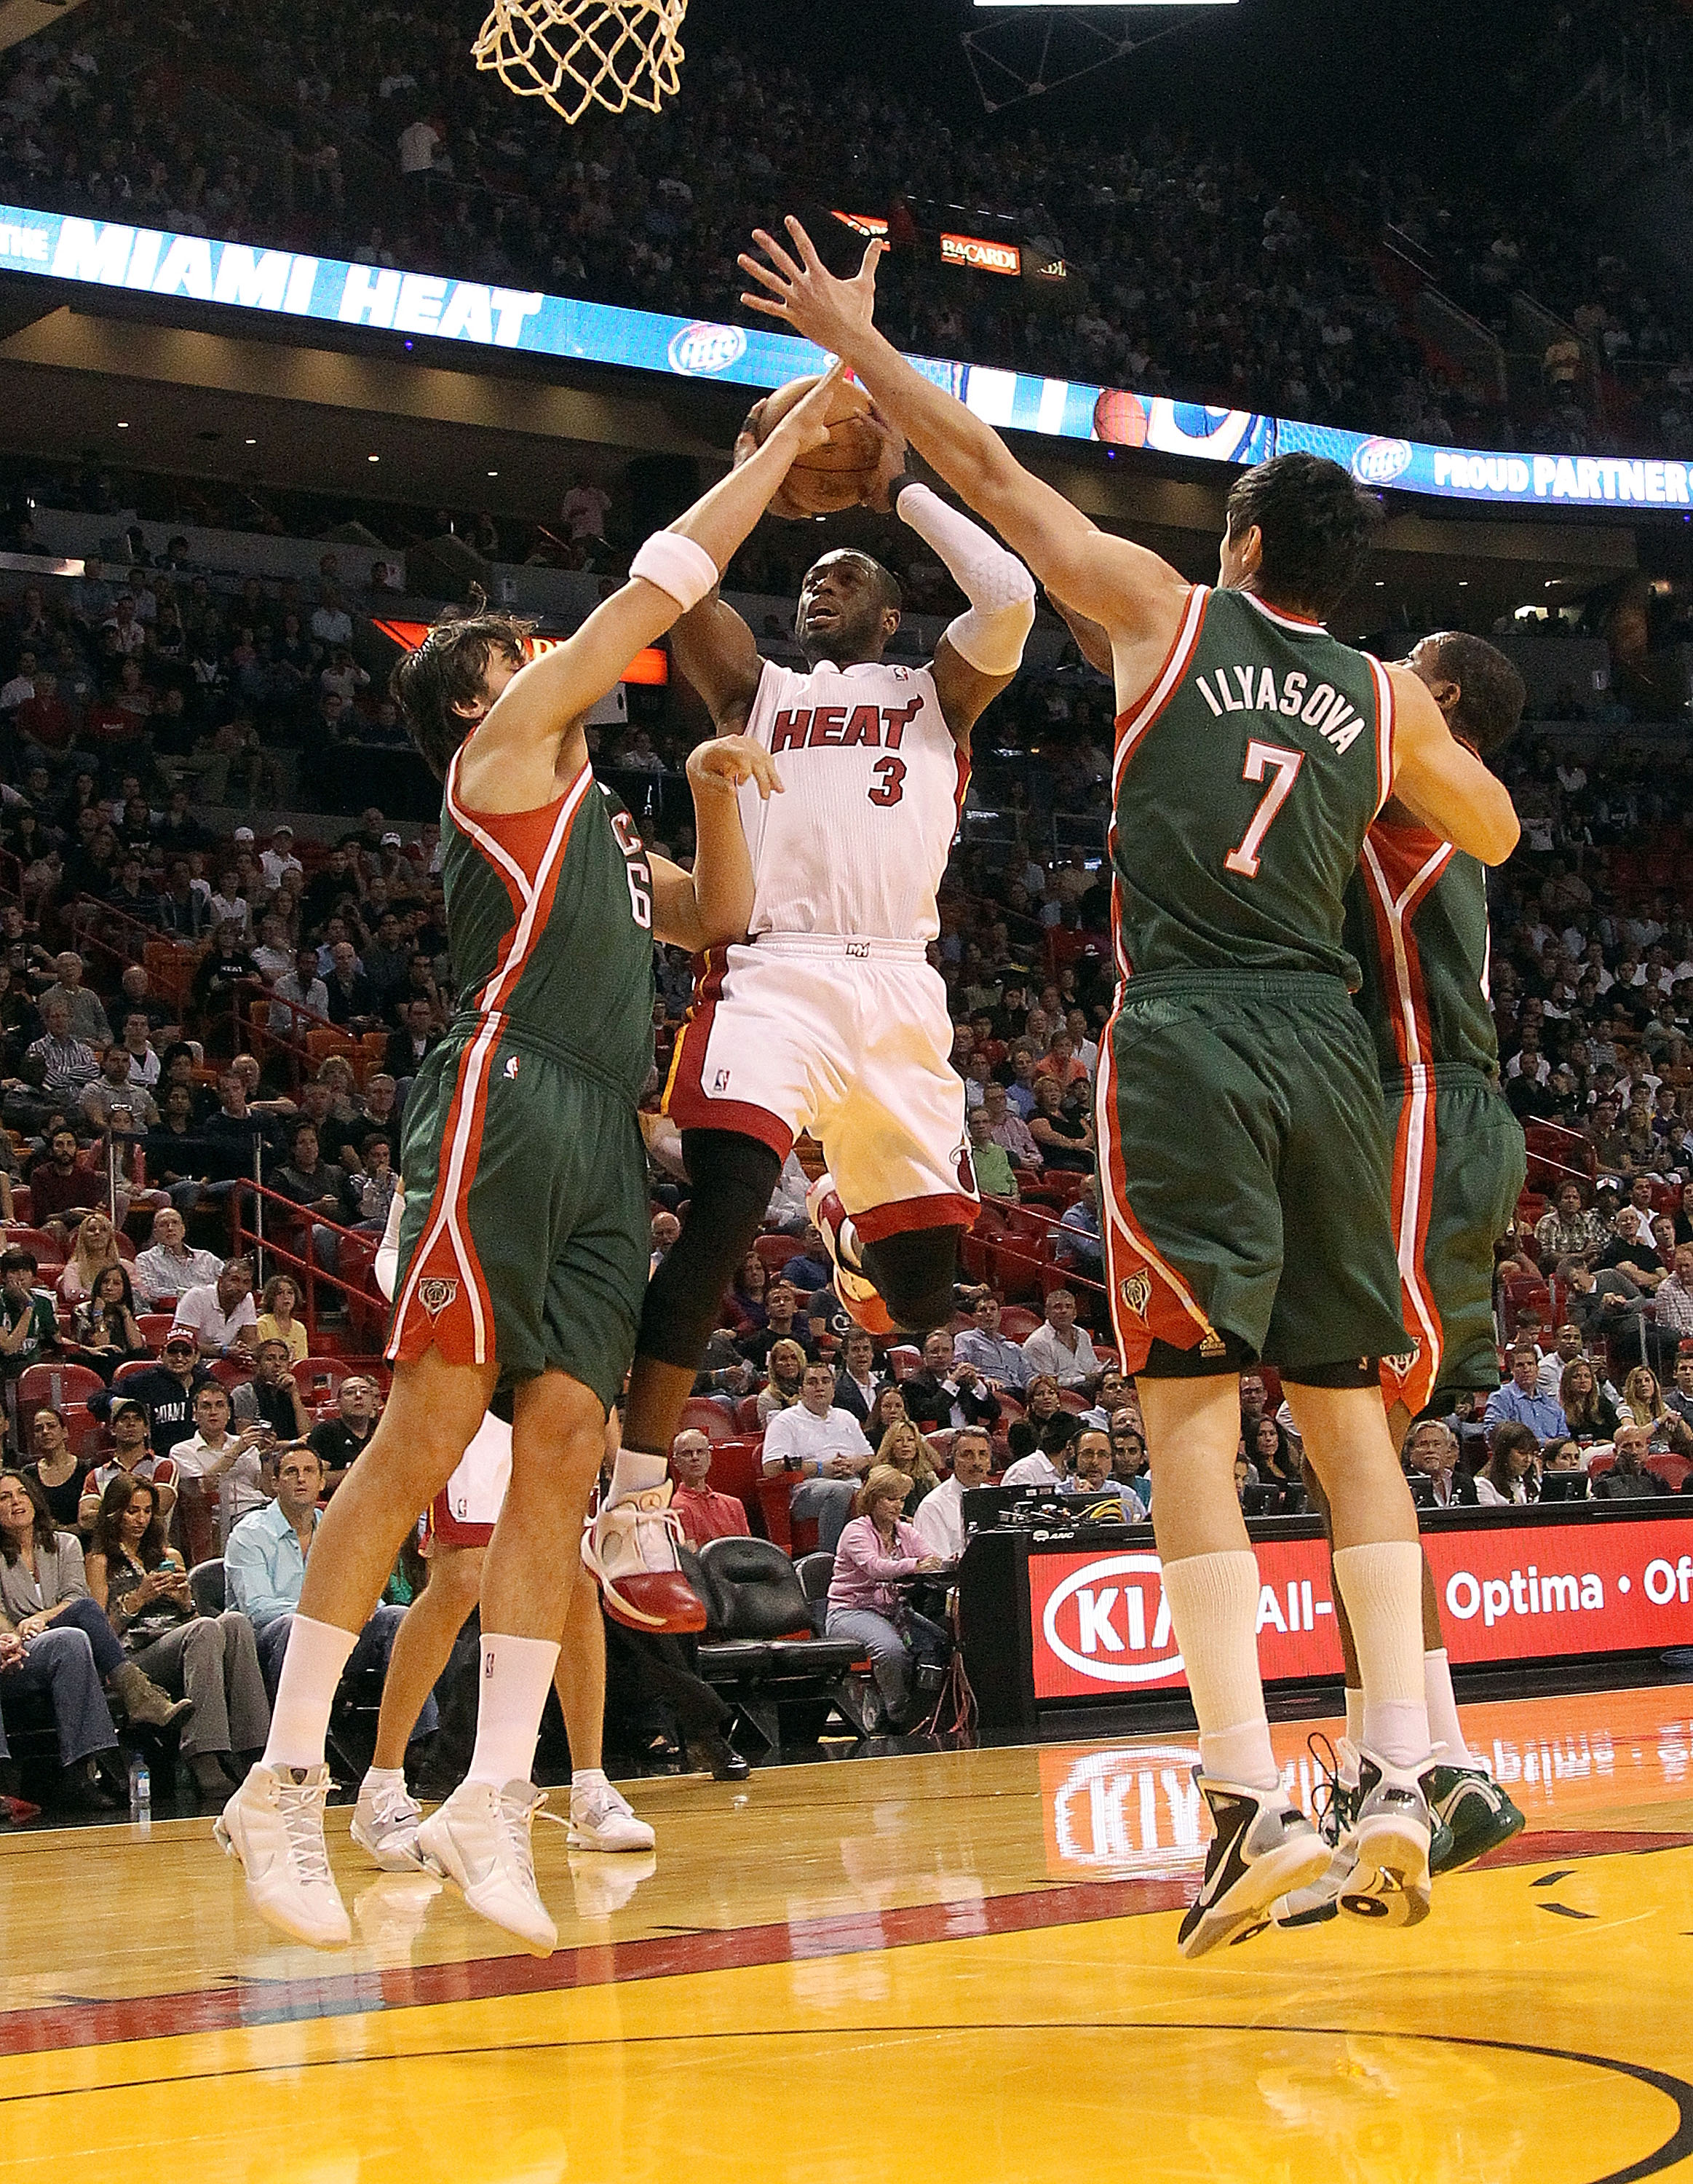 MIAMI, FL - JANUARY 04:  Dwyane Wade #3 of the Miami Heat shoots over  Andrew Bogut #6 and Ersan Ilyasova #7 of the Milwaukee Bucks during a game at American Airlines Arena on January 4, 2011 in Miami, Florida. NOTE TO USER: User expressly acknowledges an